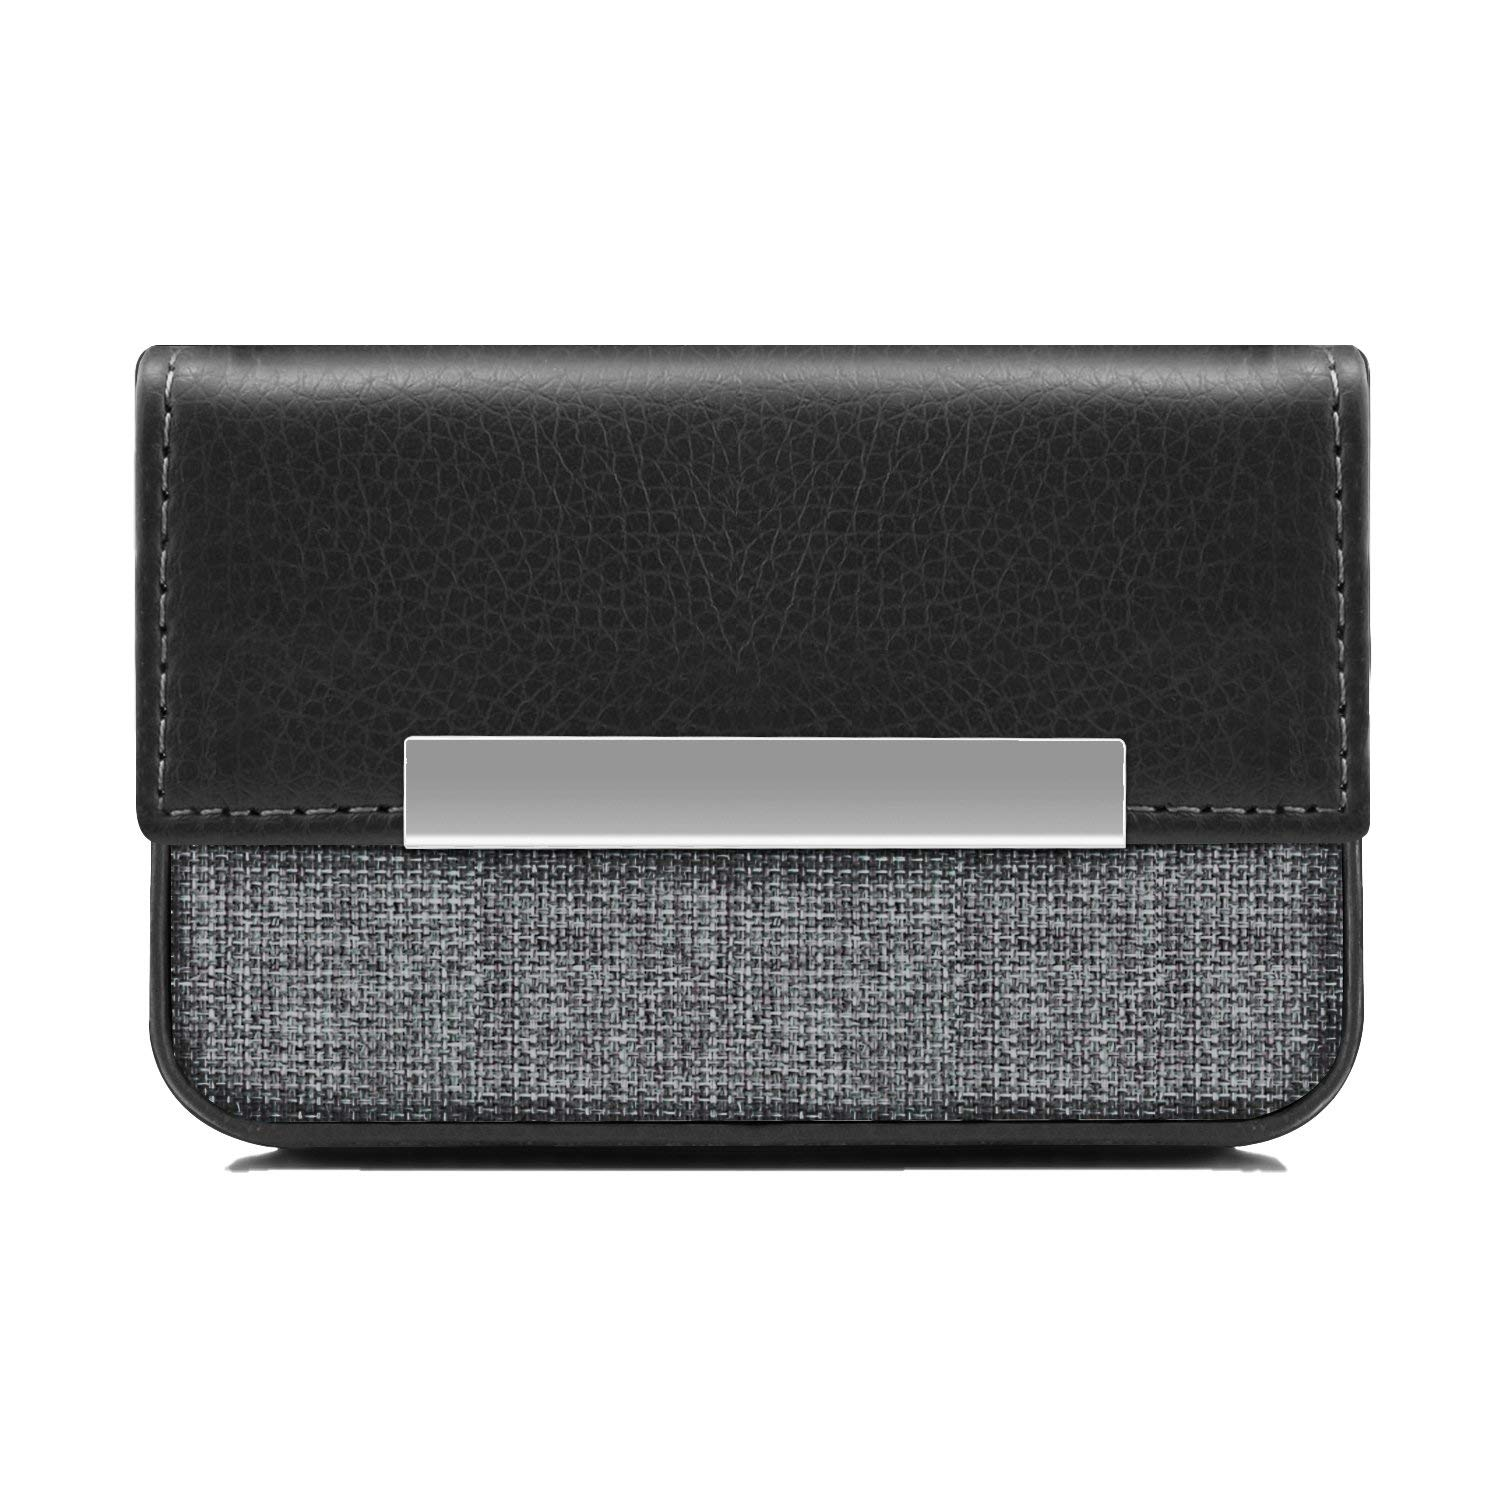 MaxGear Business Card Case Fashion PU Leather Business Card Holder with Magnetic Shut, Holds 25 Business Cards, Black